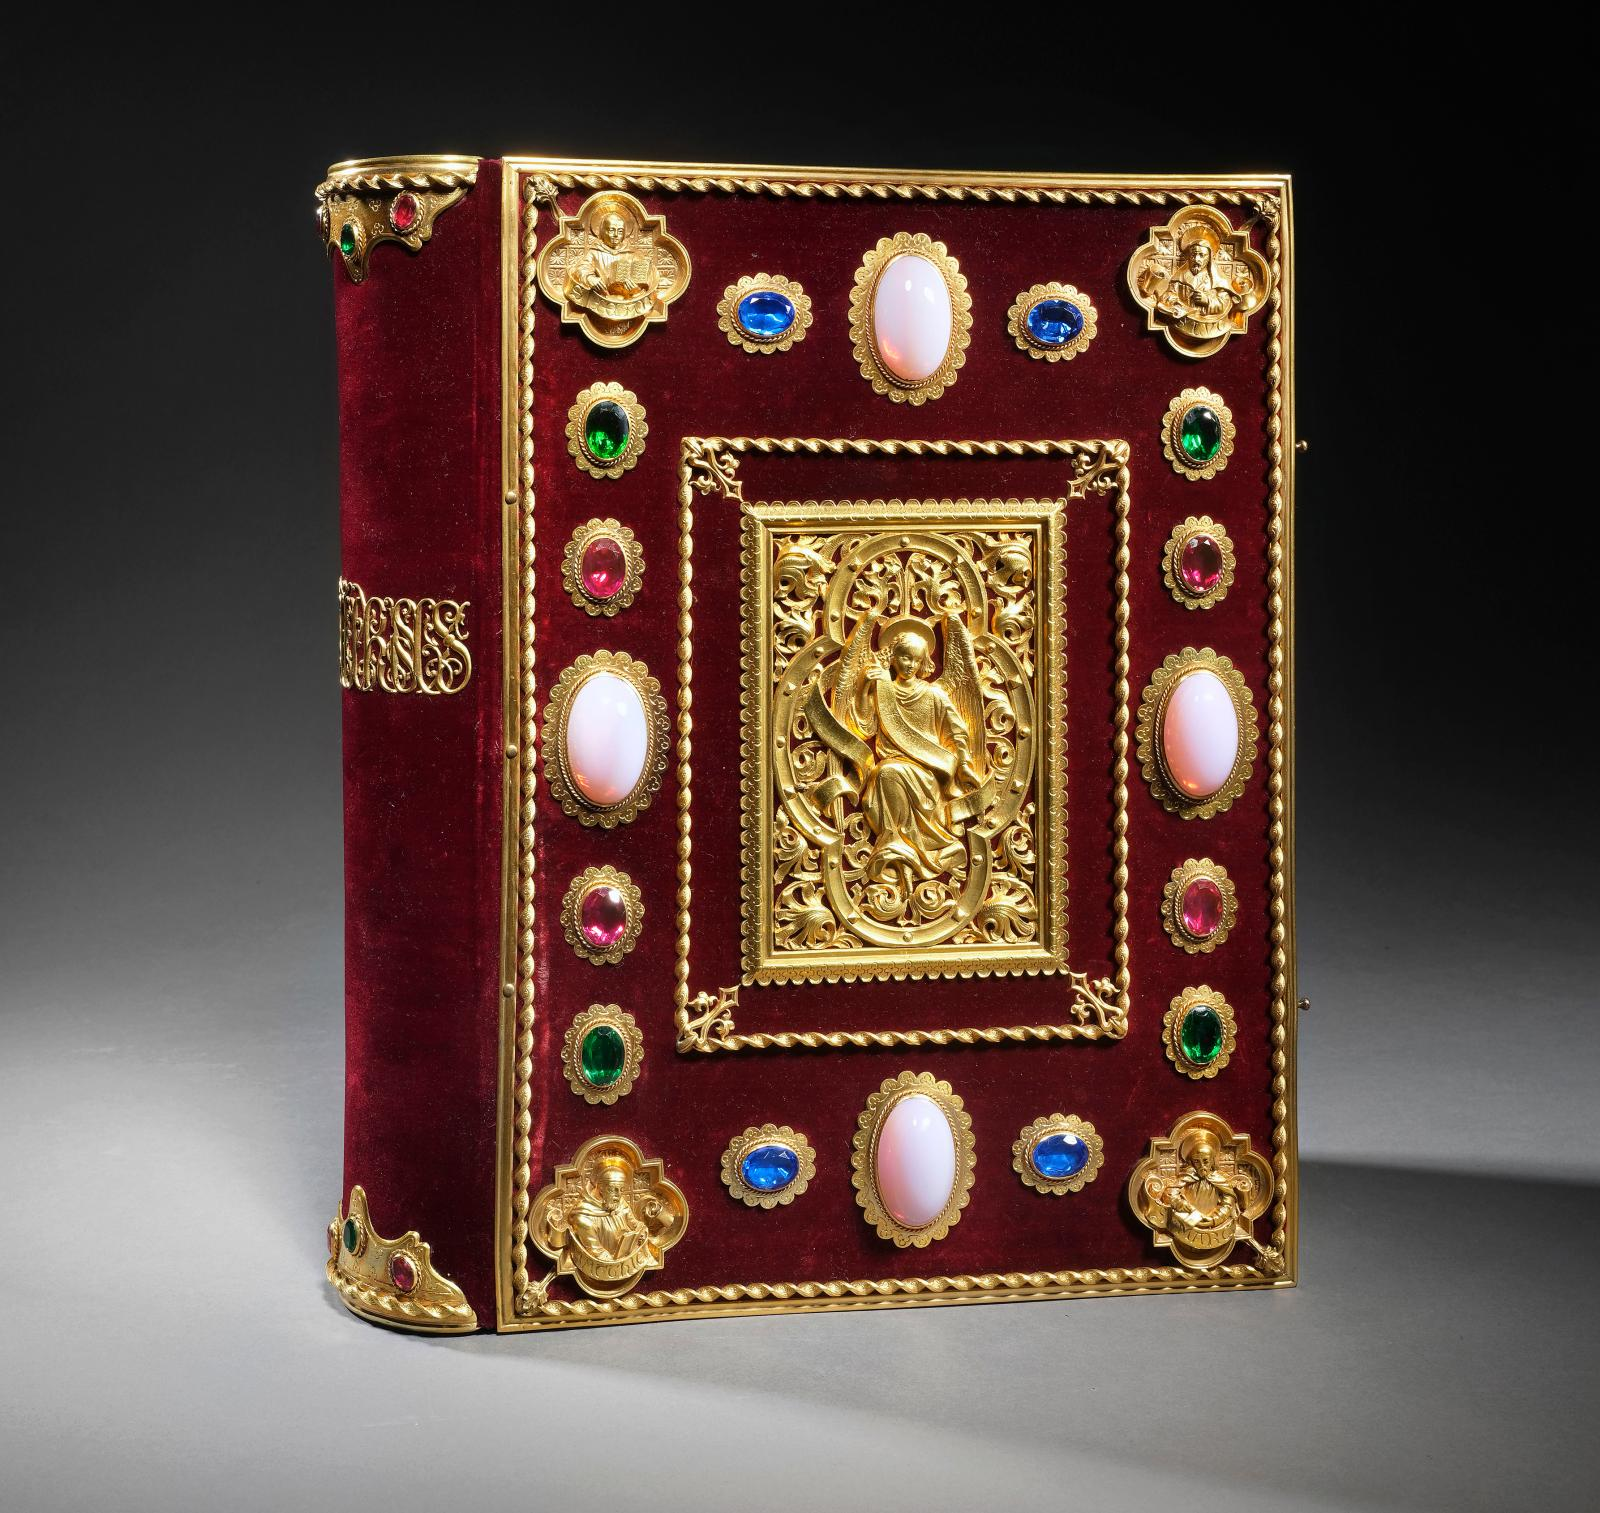 Hours of Queen Anne of Brittany. Paris, Curmer, (1859-1861), large in-4o volume; publisher's Gospel binding in garnet velvet with gilt met